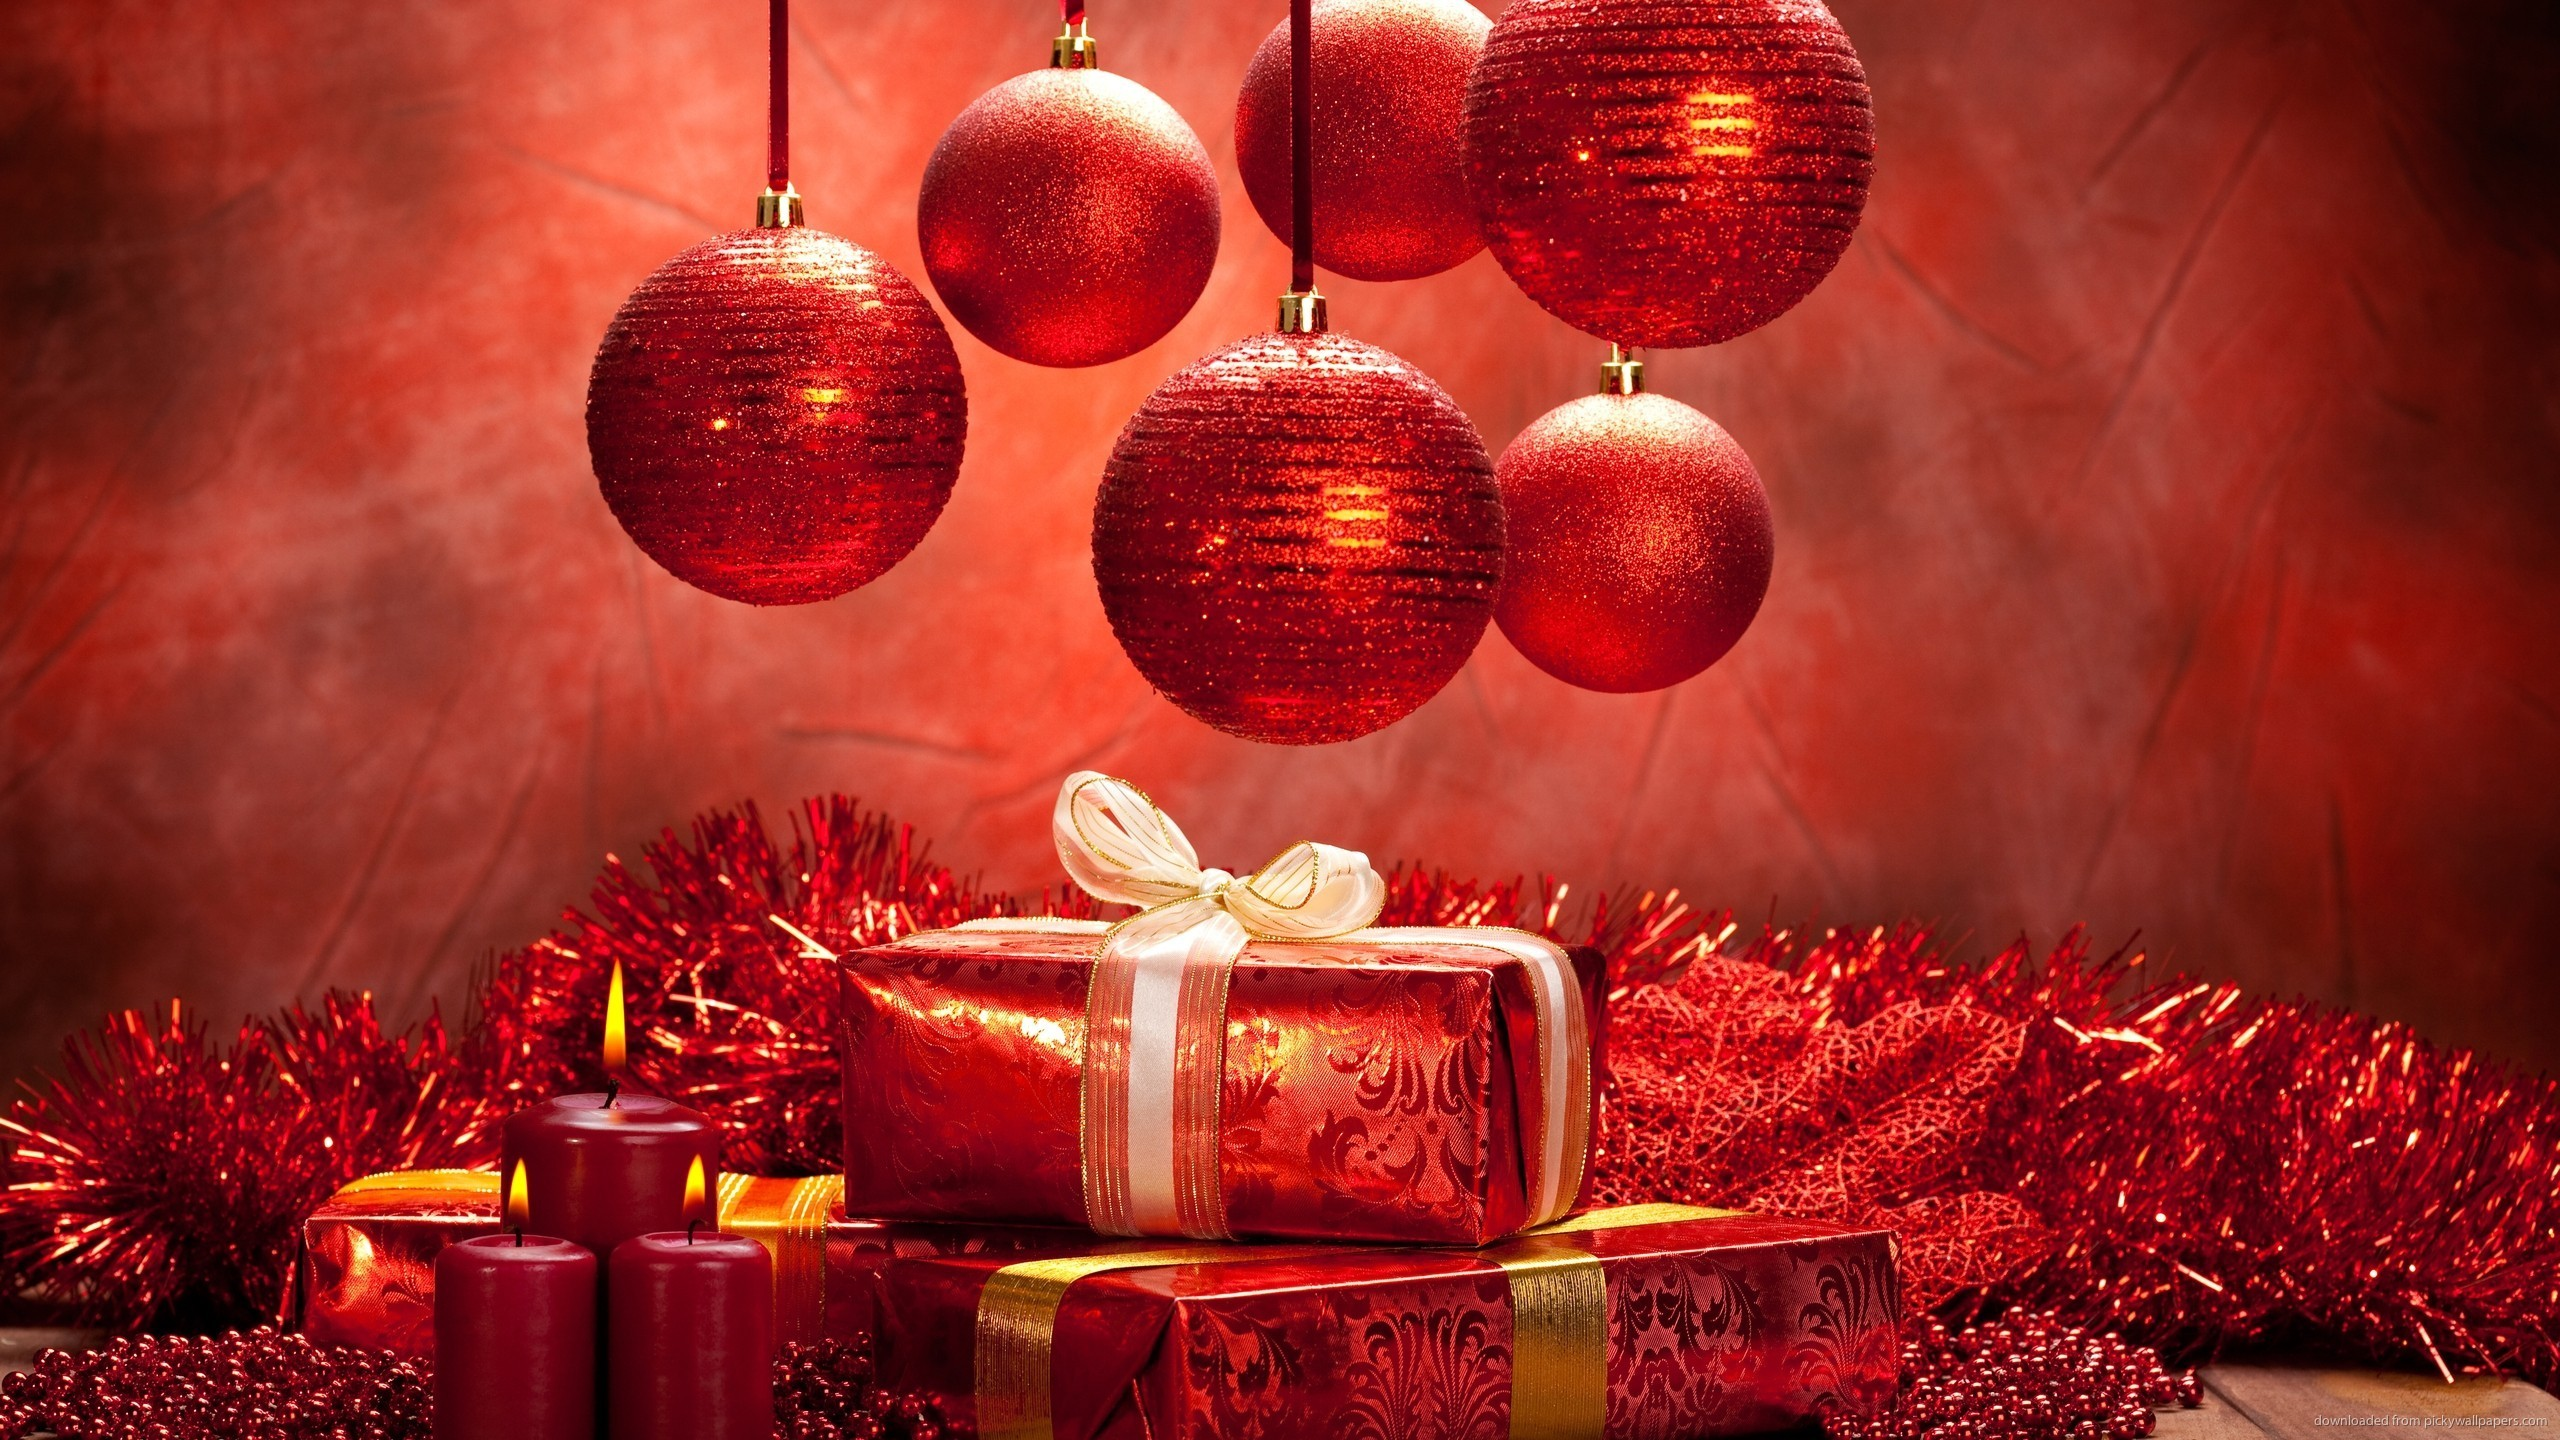 Free Download Christmas Gifts Wallpaper Wallpaper High Definition High 2560x1440 For Your Desktop Mobile Tablet Explore 45 Christmas Gift Wallpaper Christmas Gifts Wallpaper Hd Diwali Gift Wallpaper Birthday Gift Wallpaper